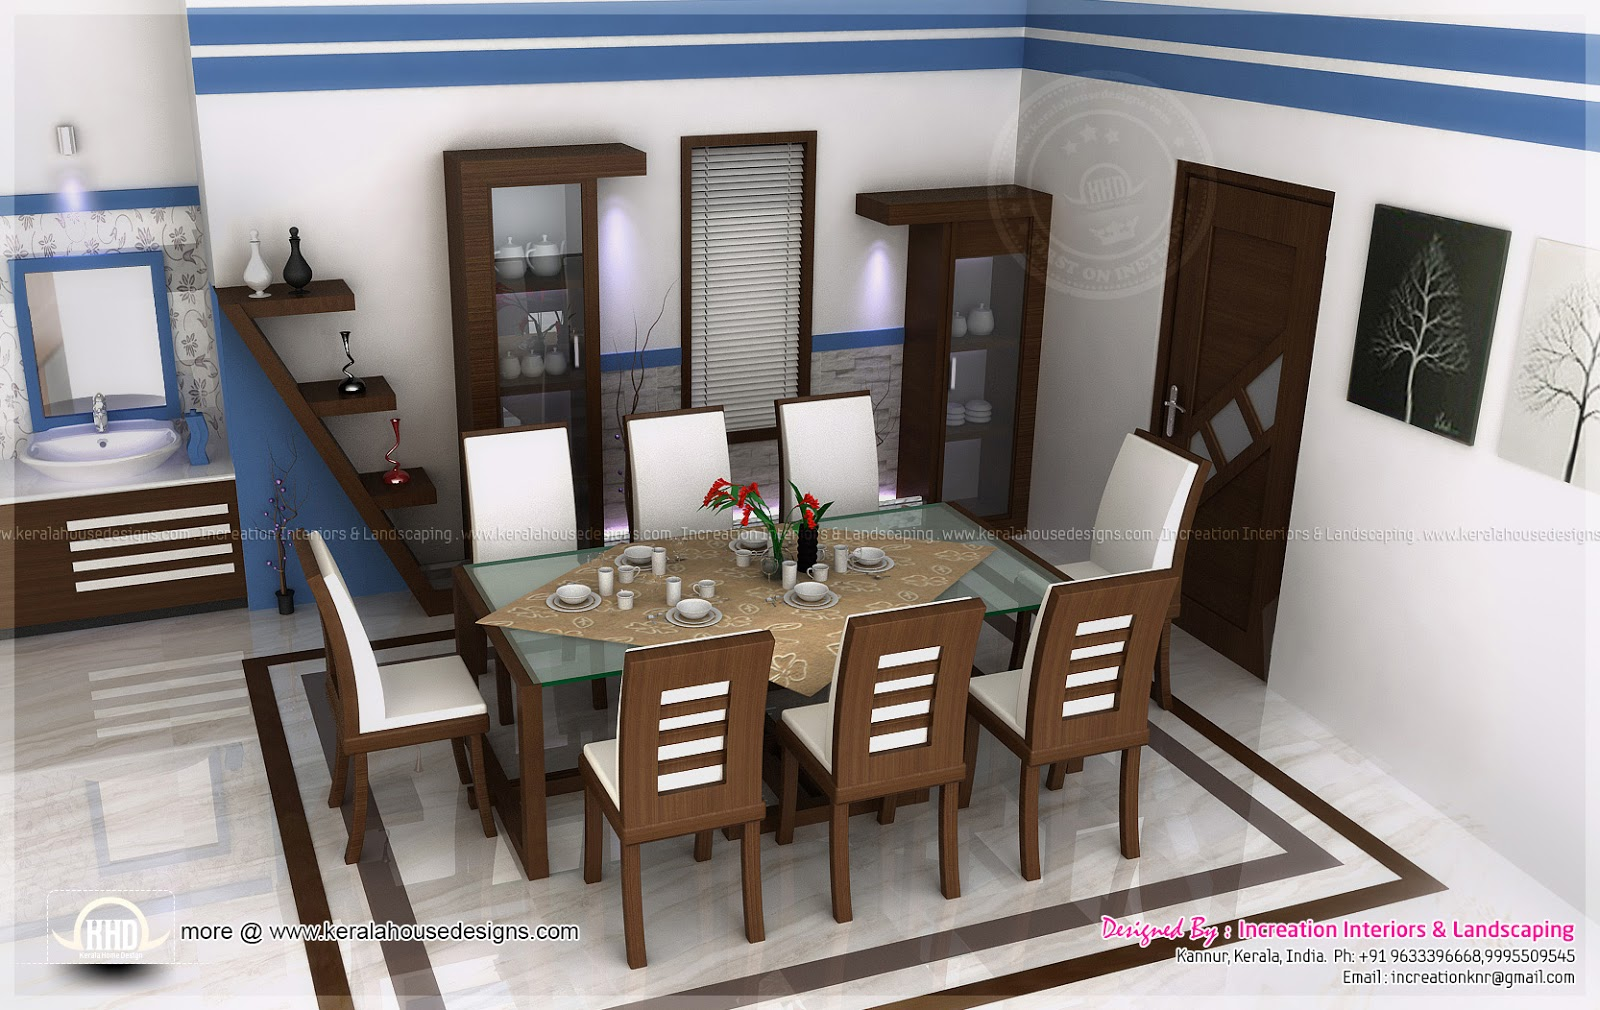 House interior ideas in 3d rendering kerala home design for Interior home